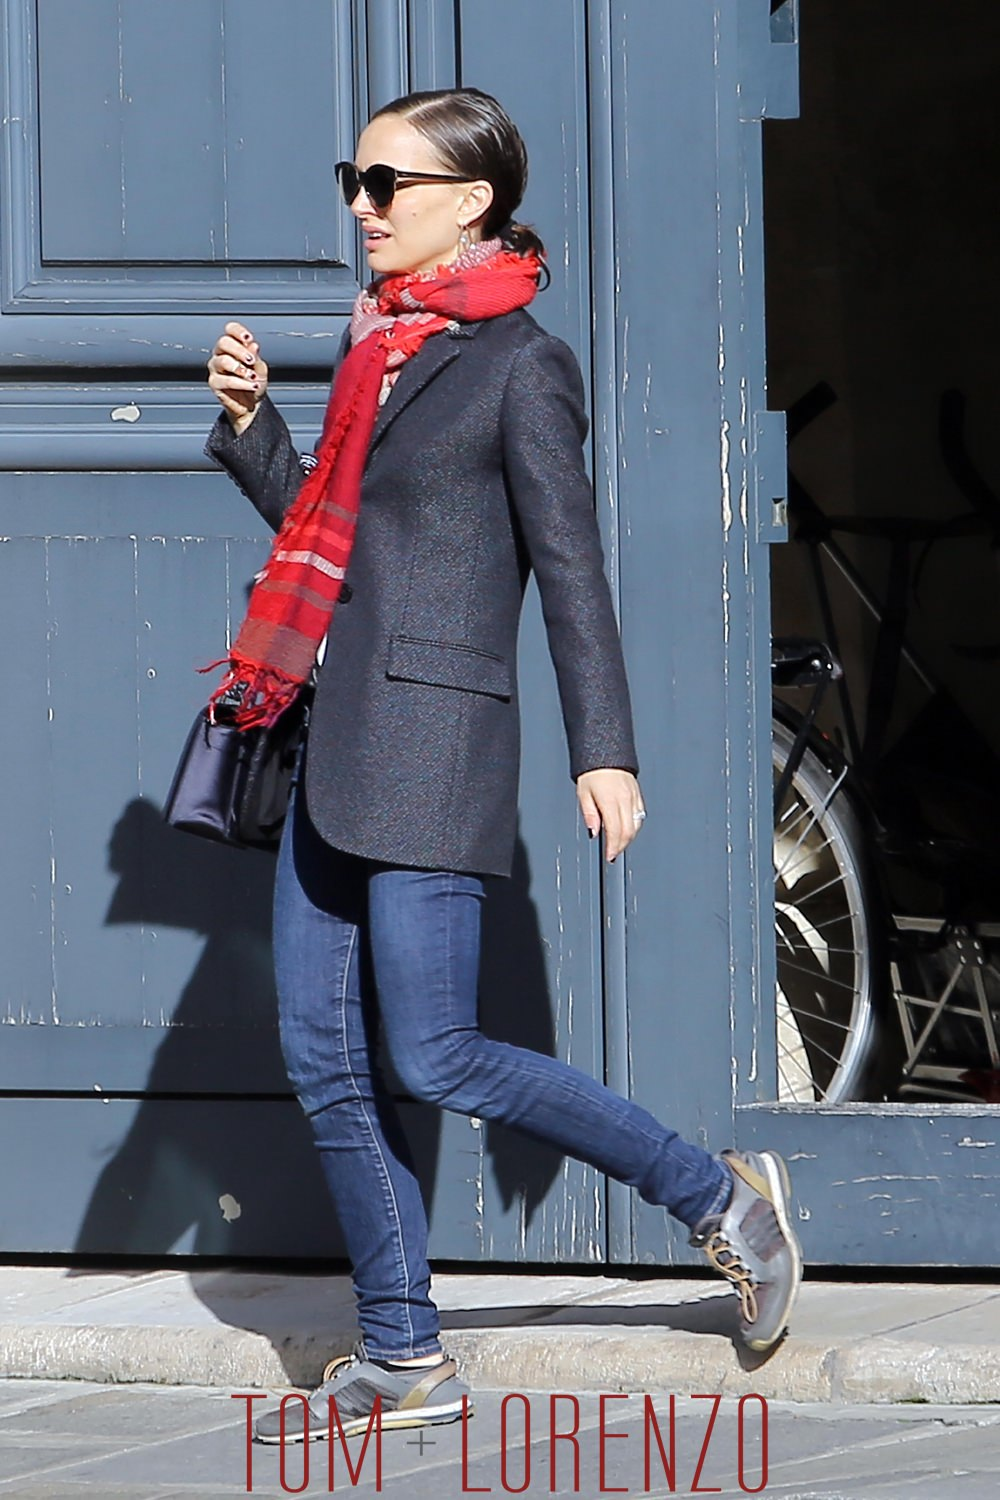 natalie portman out and about in paris tom lorenzo